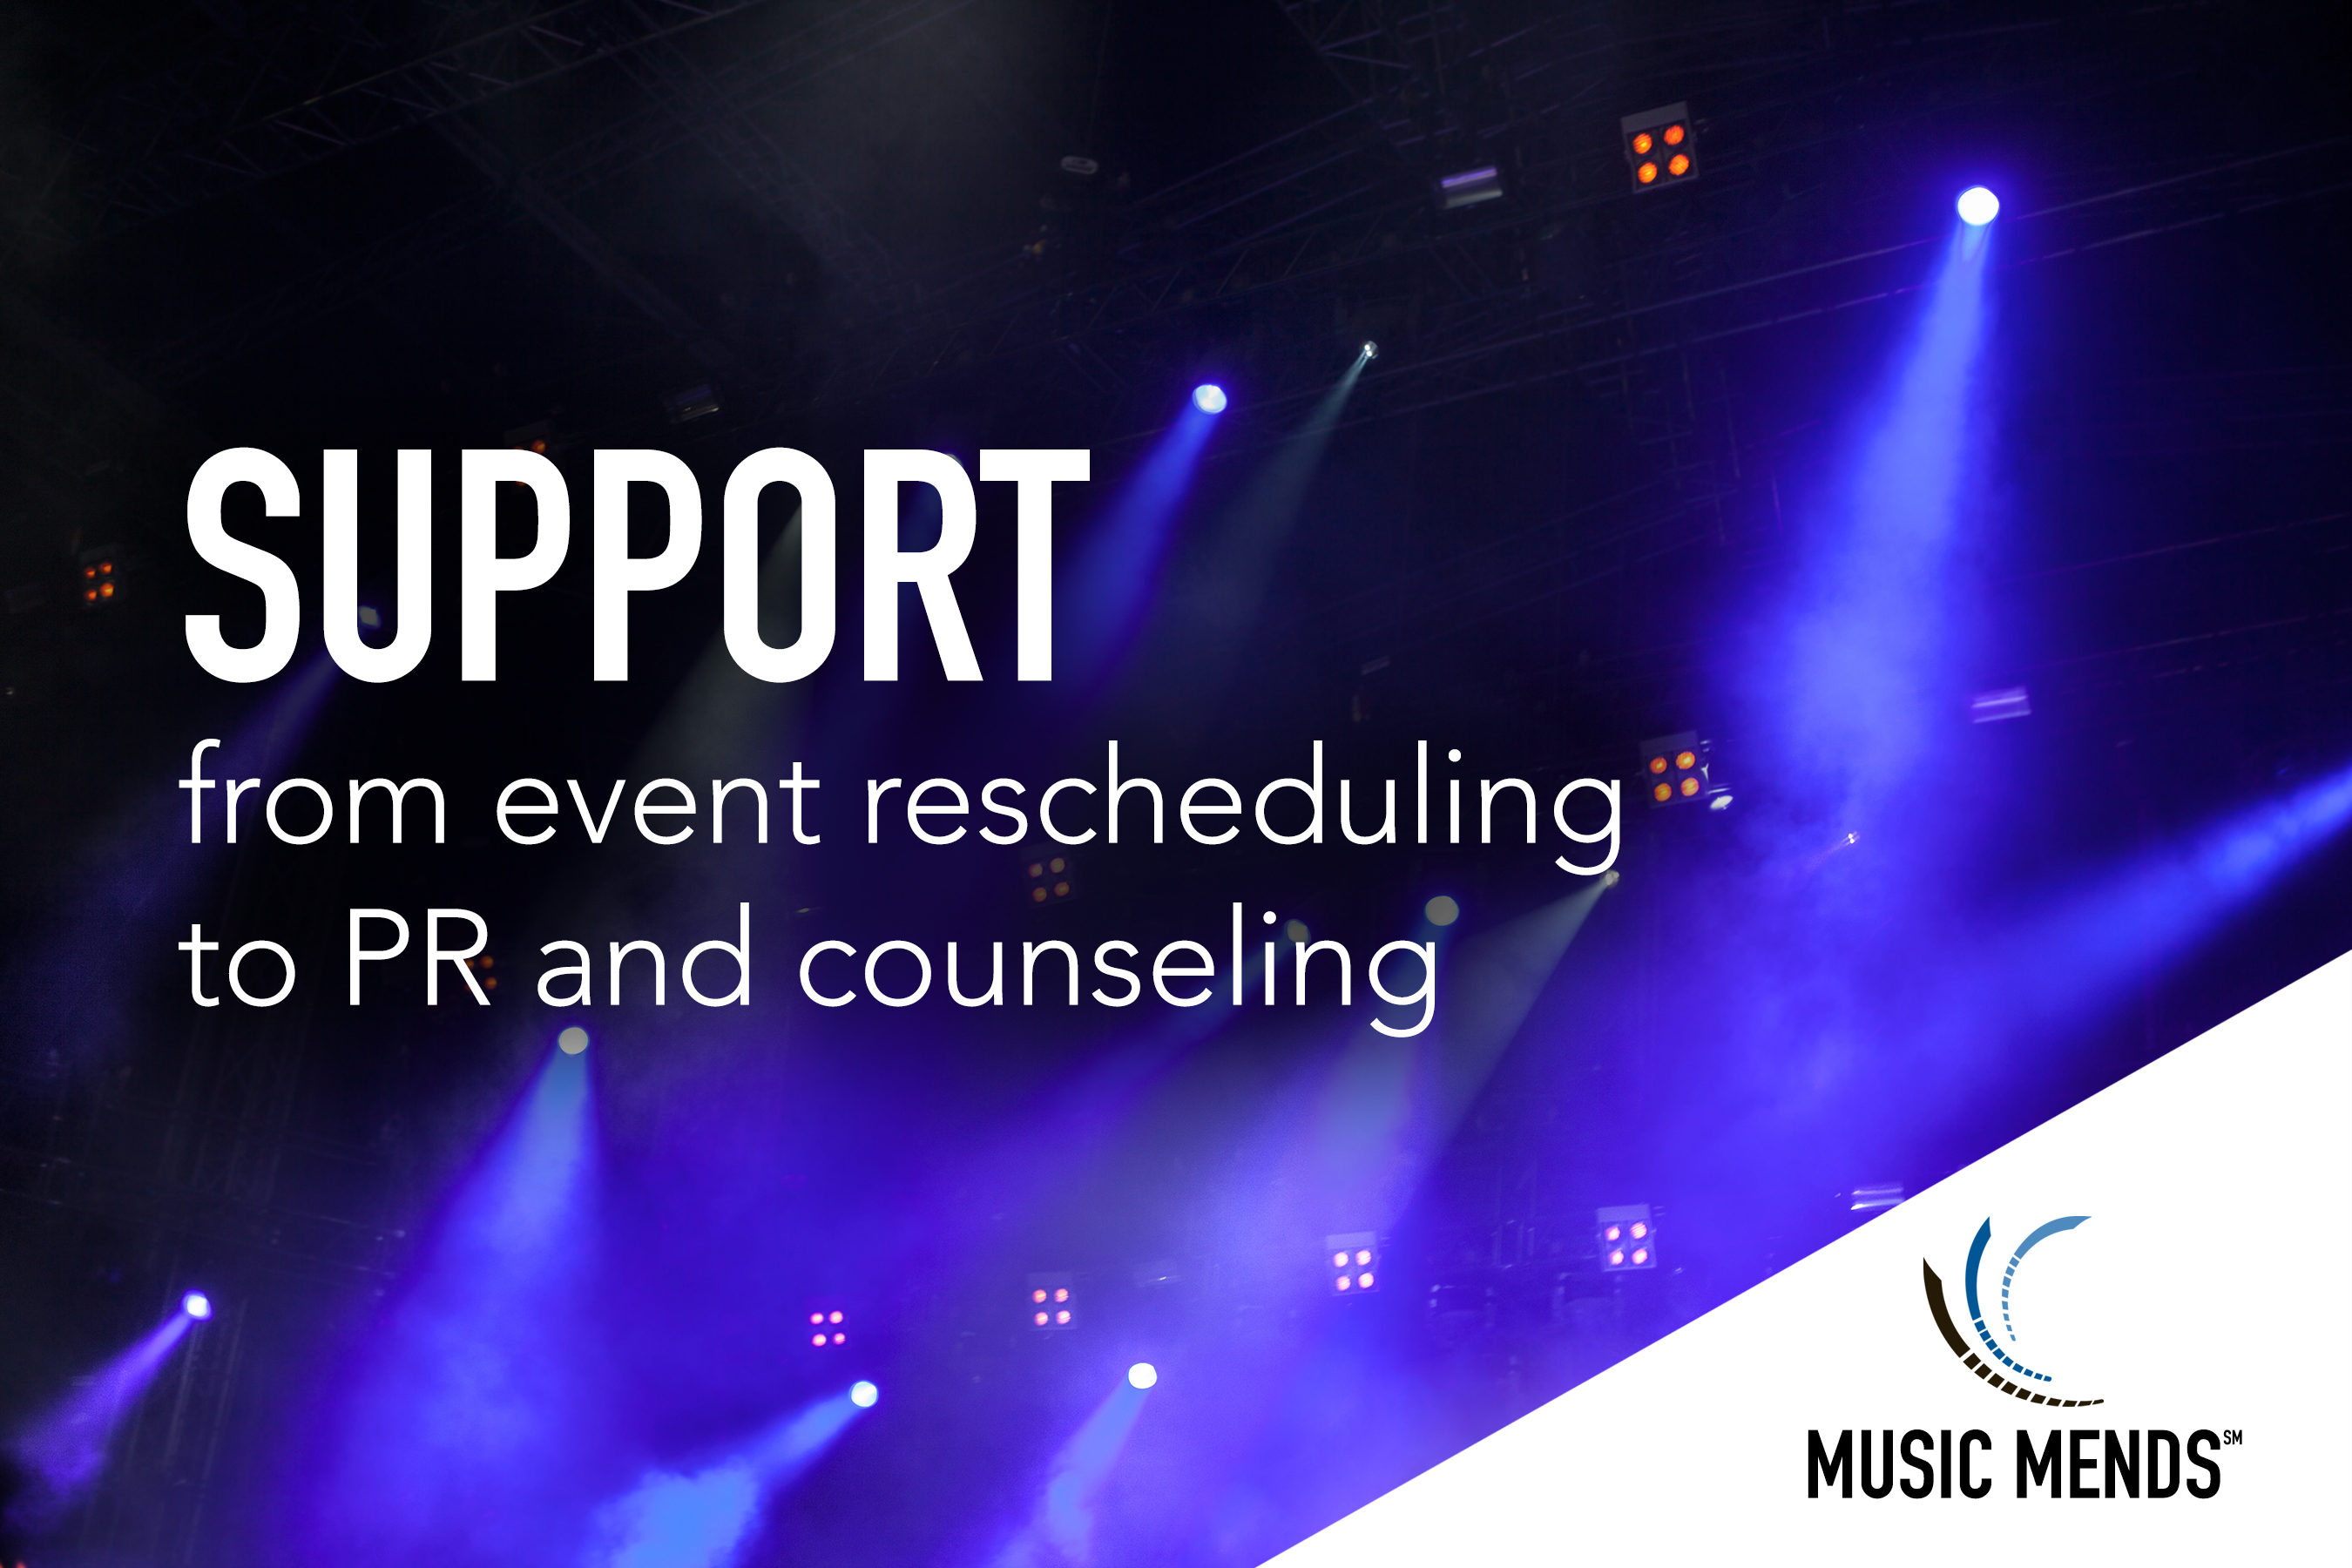 Music Mends is designed to provide support to touring artists who wish to help mend communities following an act of terrorism that interrupts a live performance